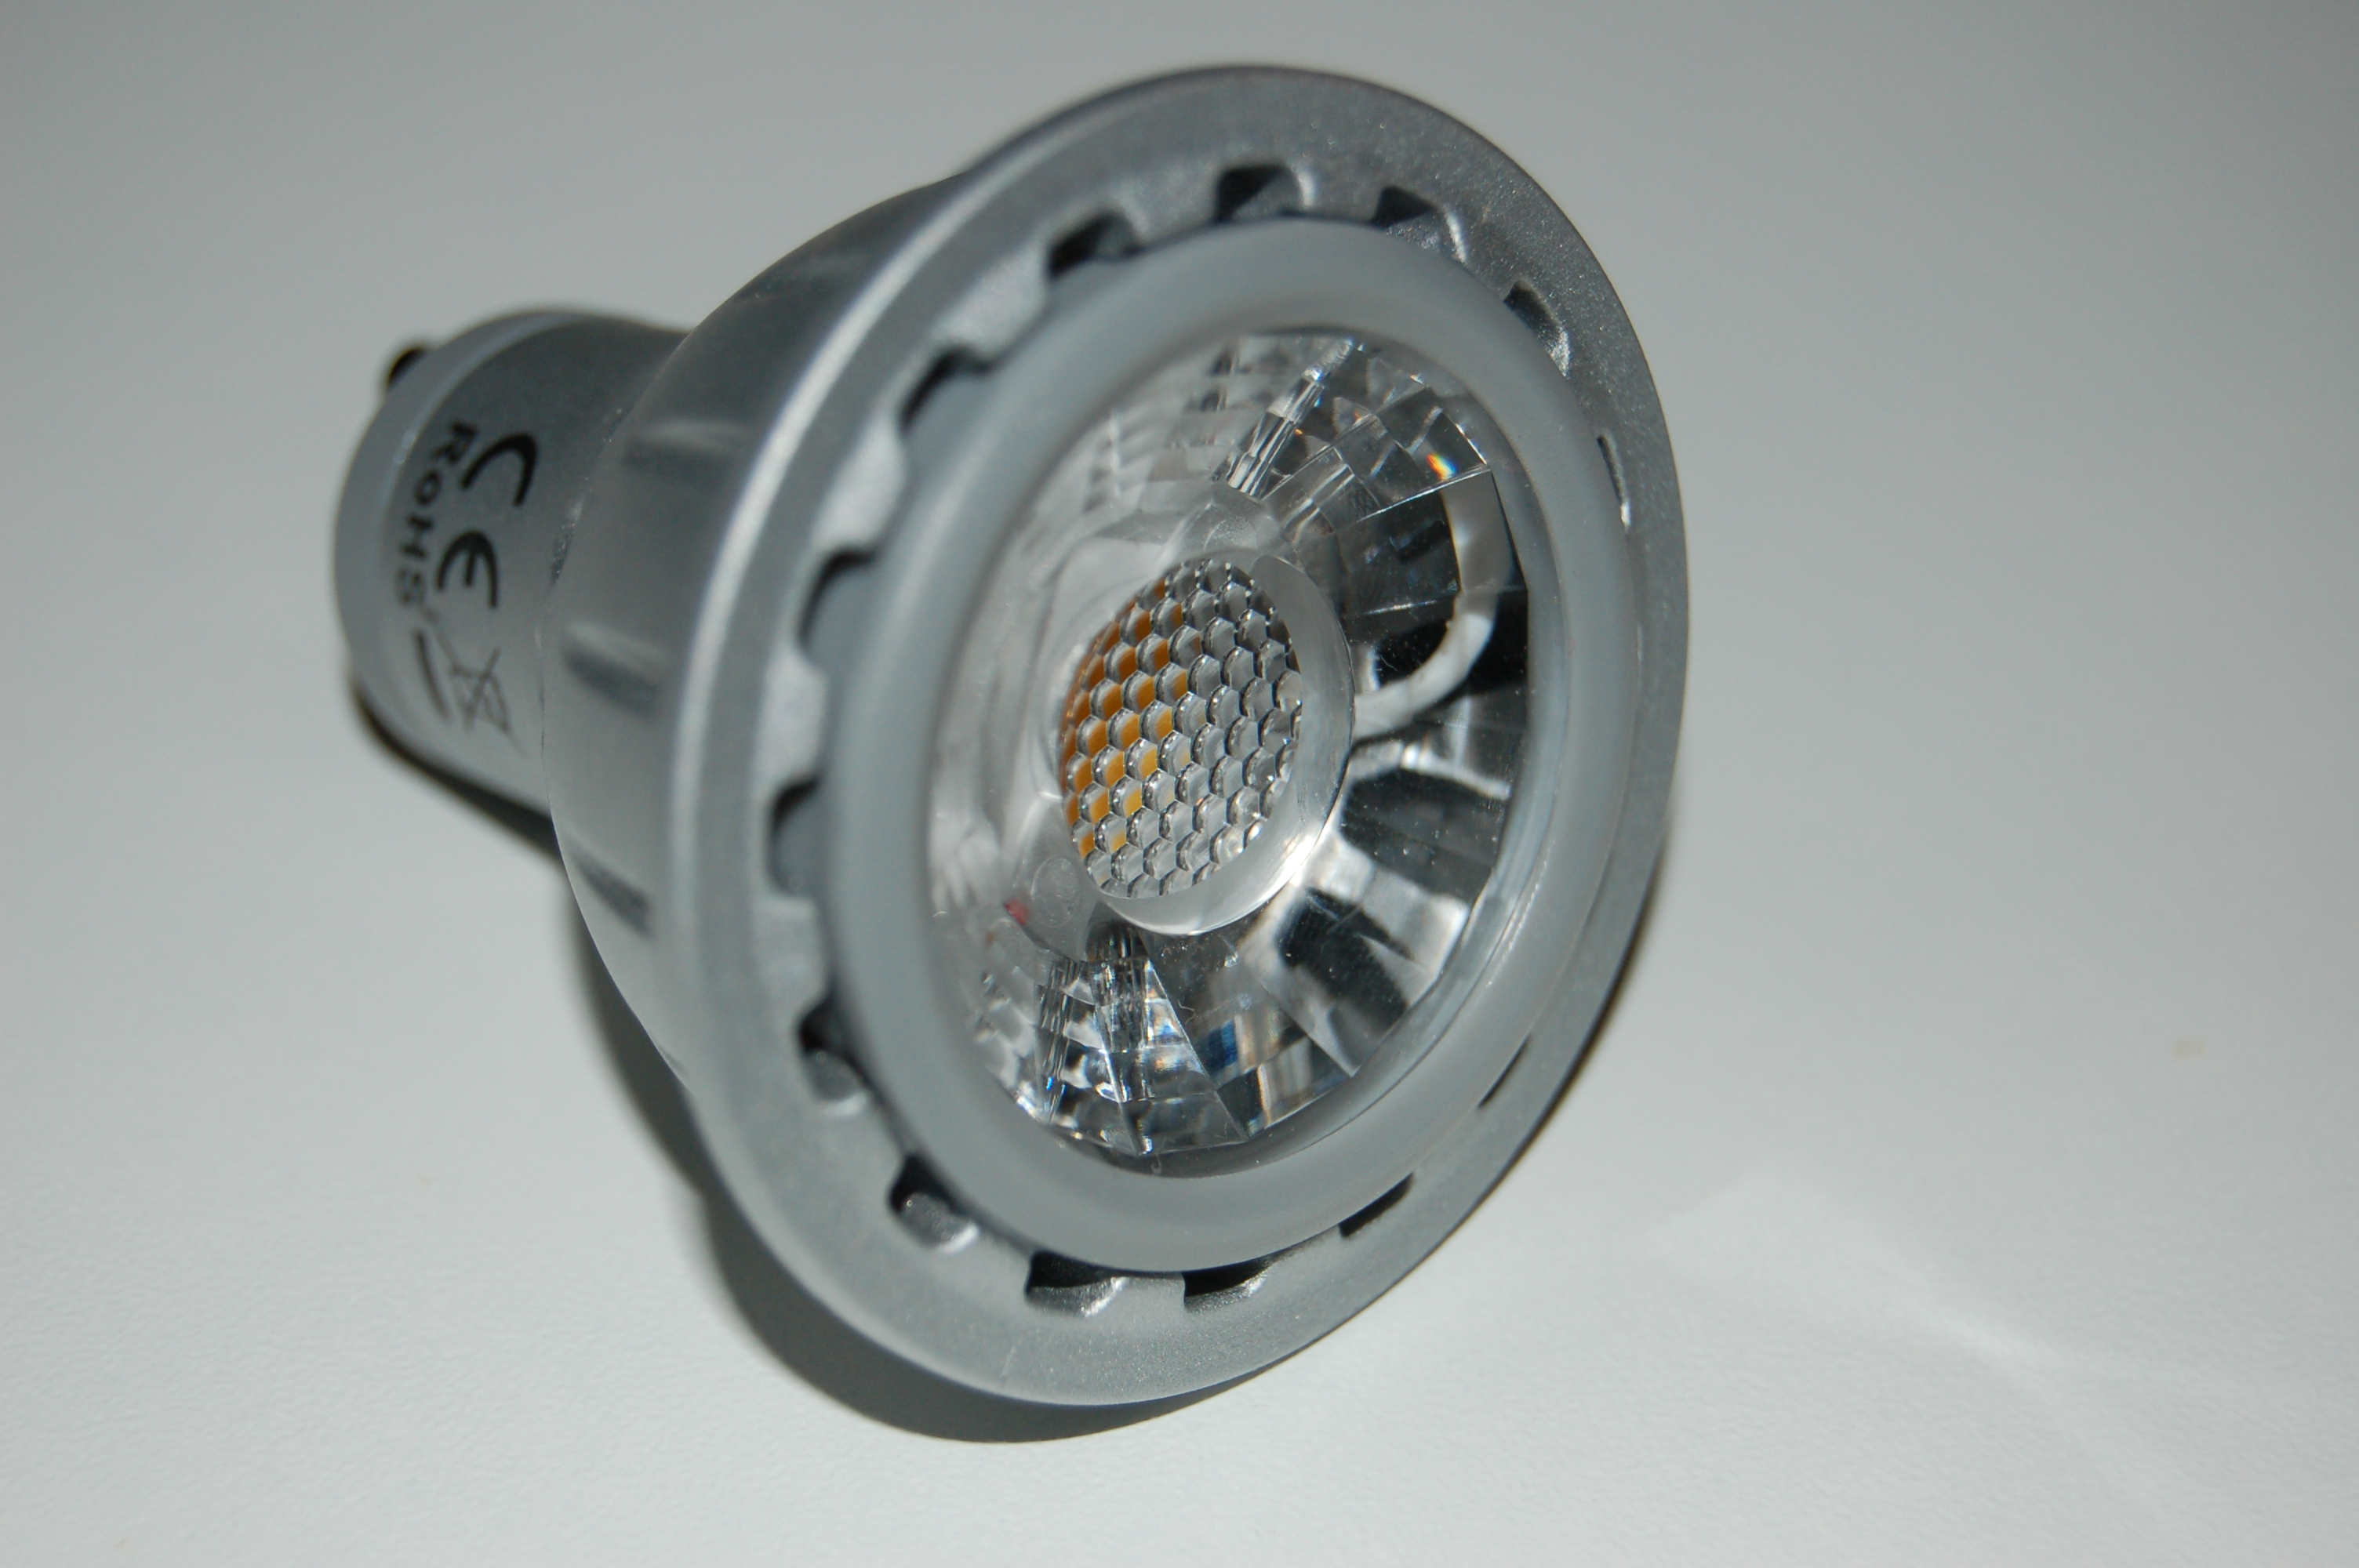 Cob Led Verlichting Dimbare Gu10 Power Led Lamp Cobverlichting Cob Spots 5 Watt 2800 K Cob Led Spot Dimbare Gu10 1 X 6